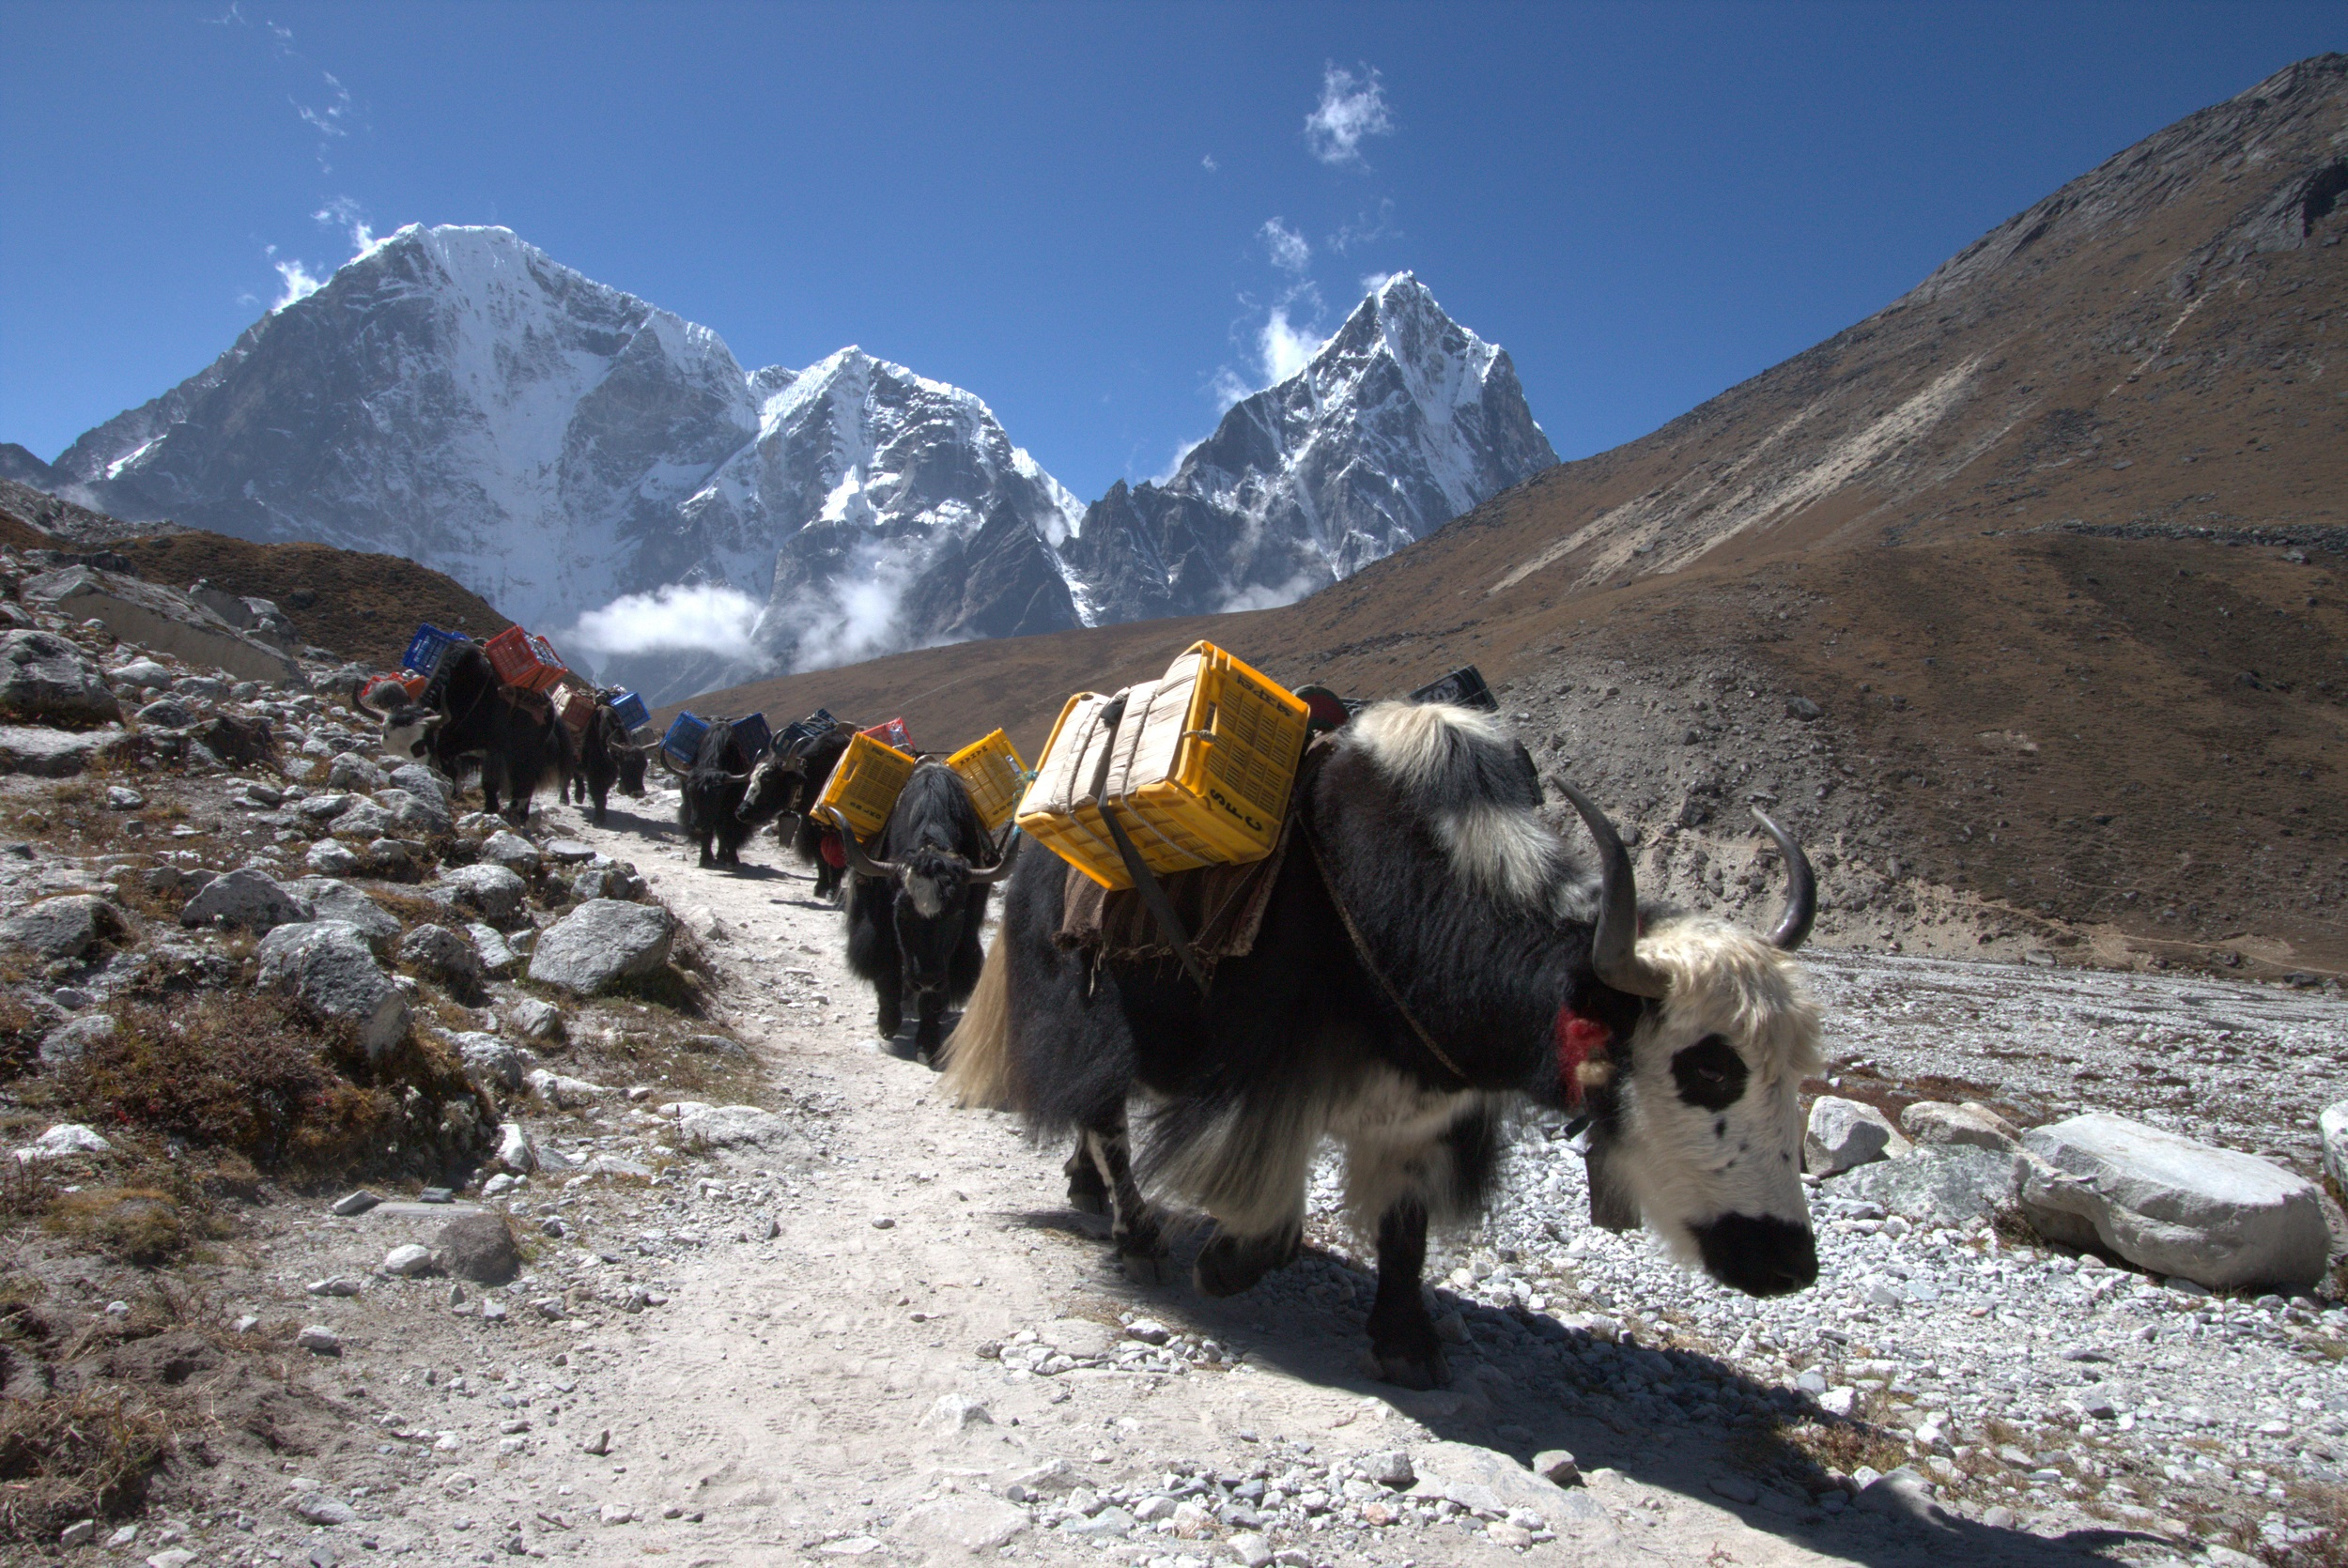 To the Everest Base Camp